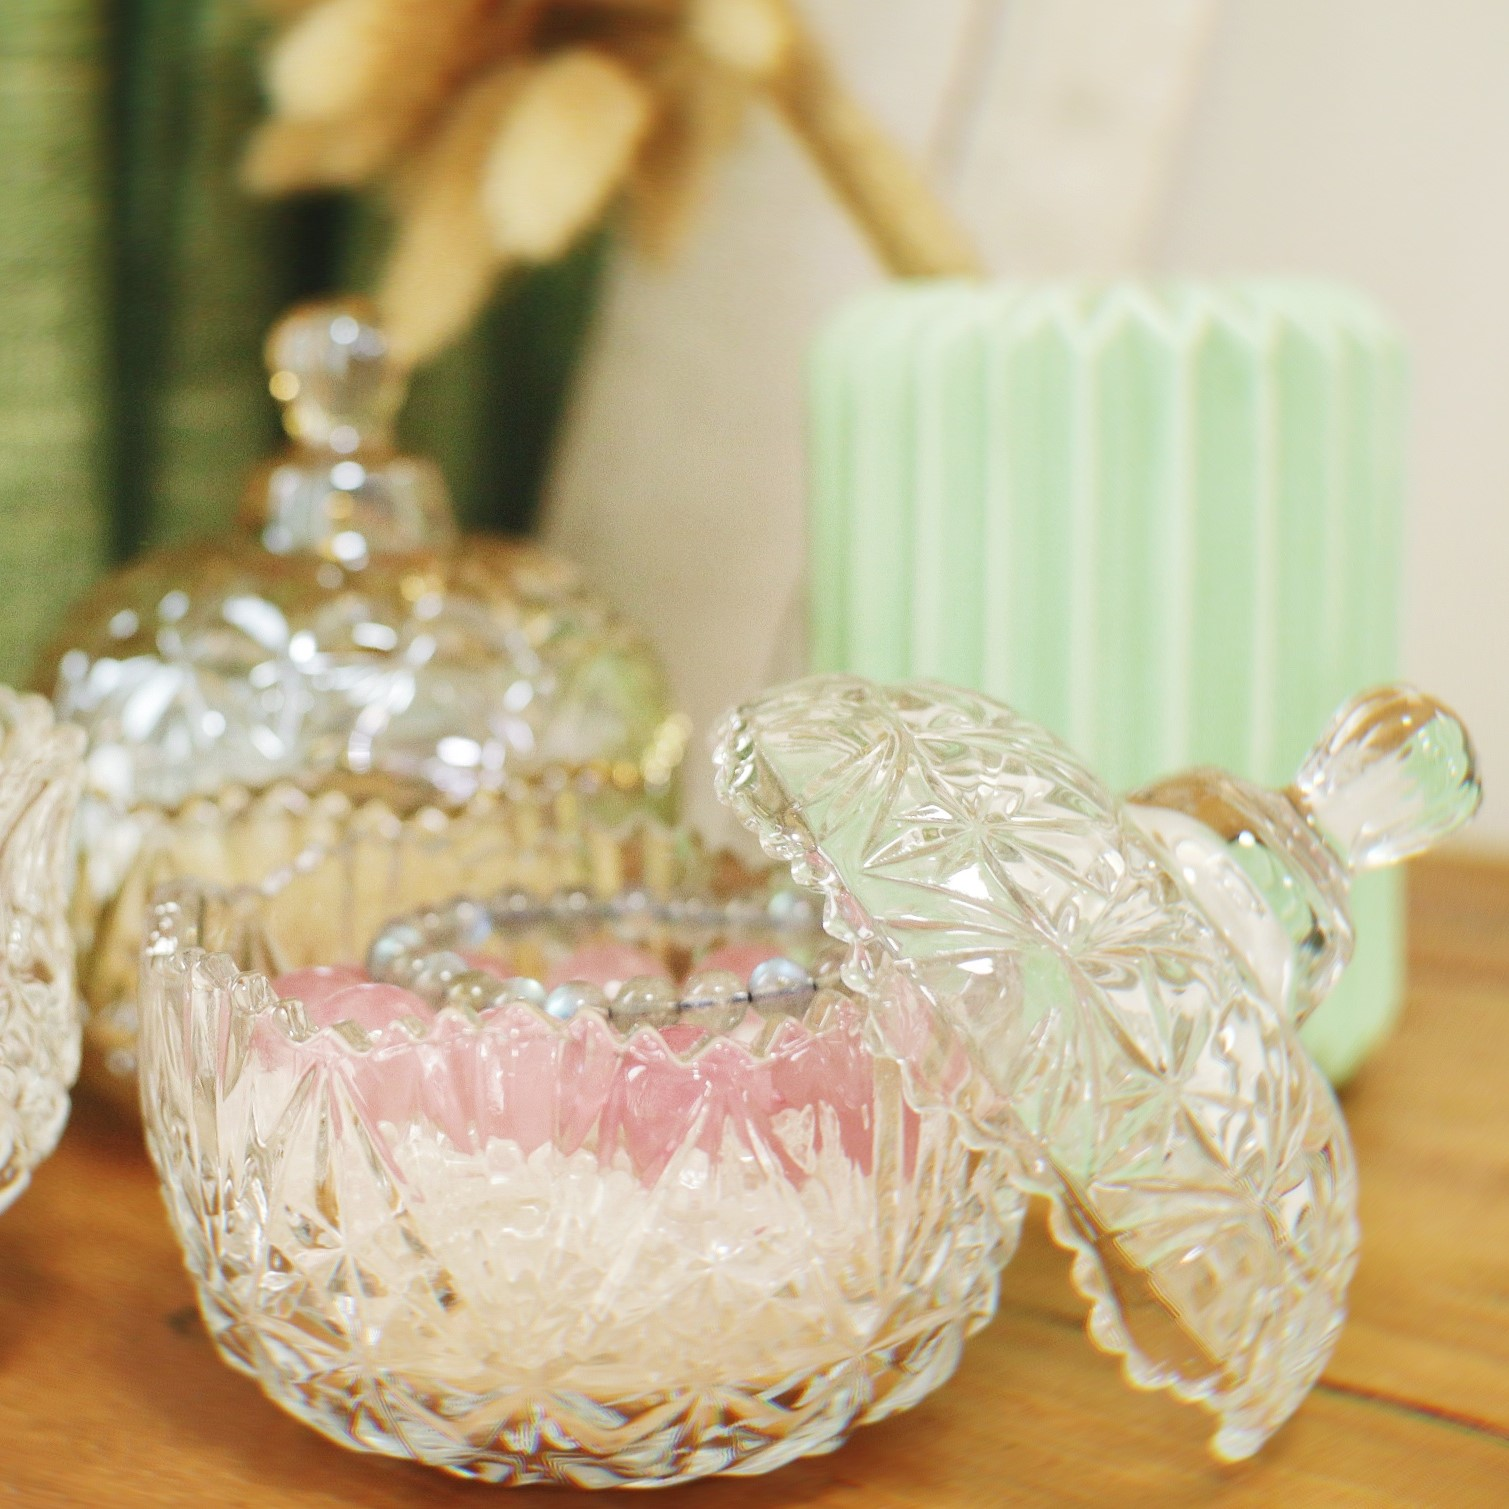 Natural white crystal degaussing crystal purification bowl treasure jade jewelry box container Royal salt utensils for Manza decoration